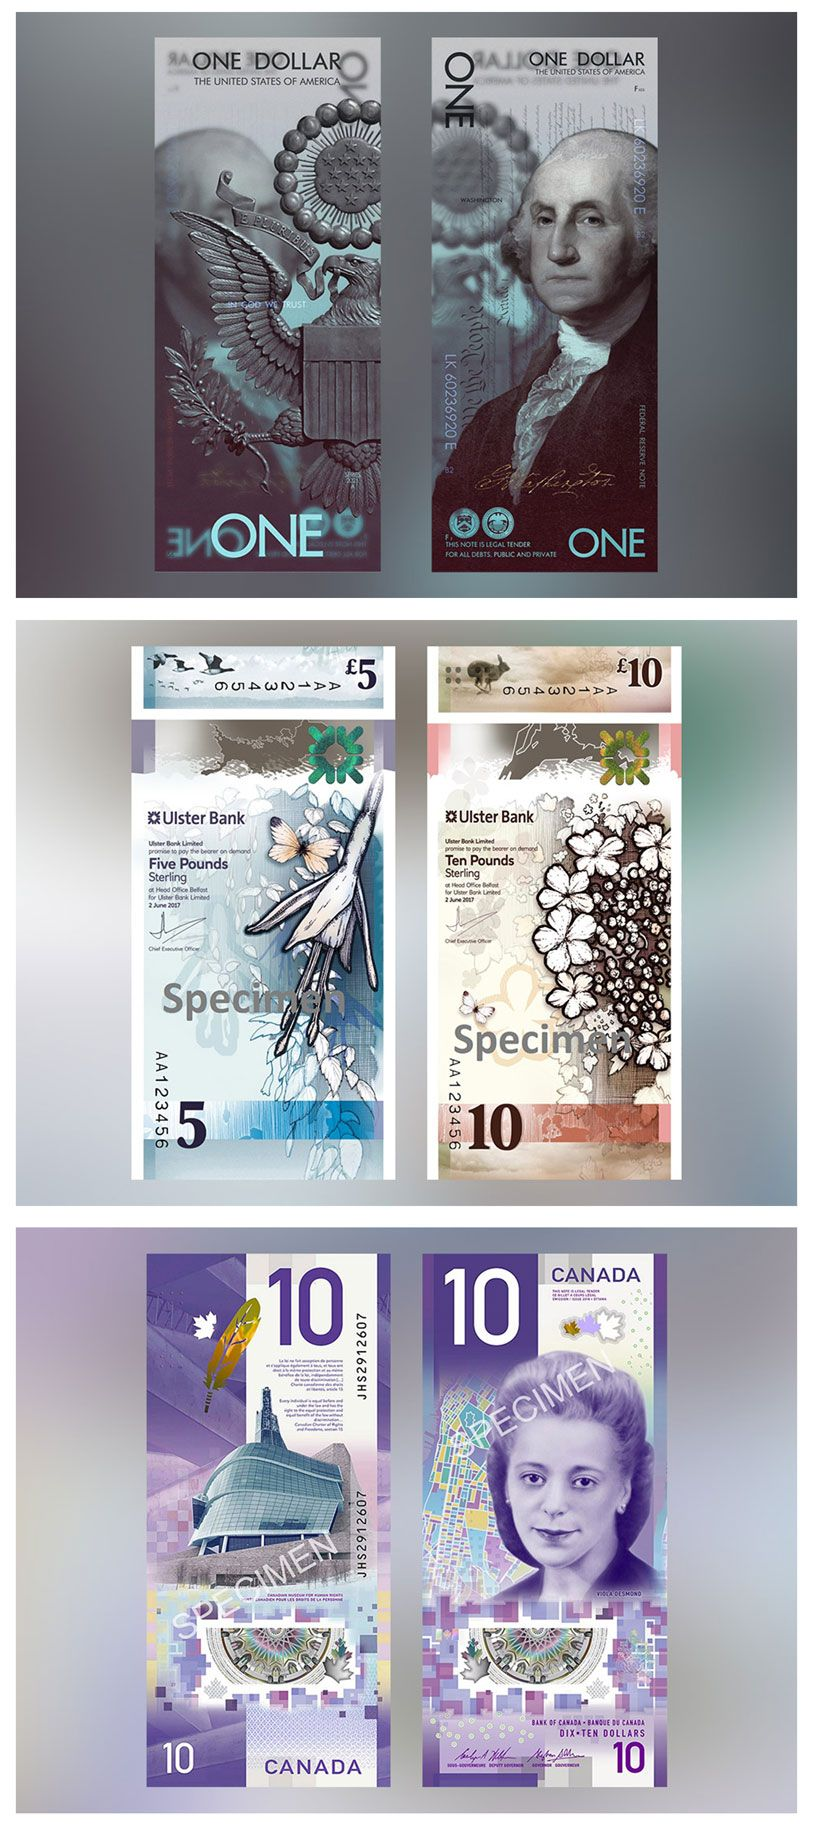 A New Trend For Bank Notes Canada And Northern Ireland Have